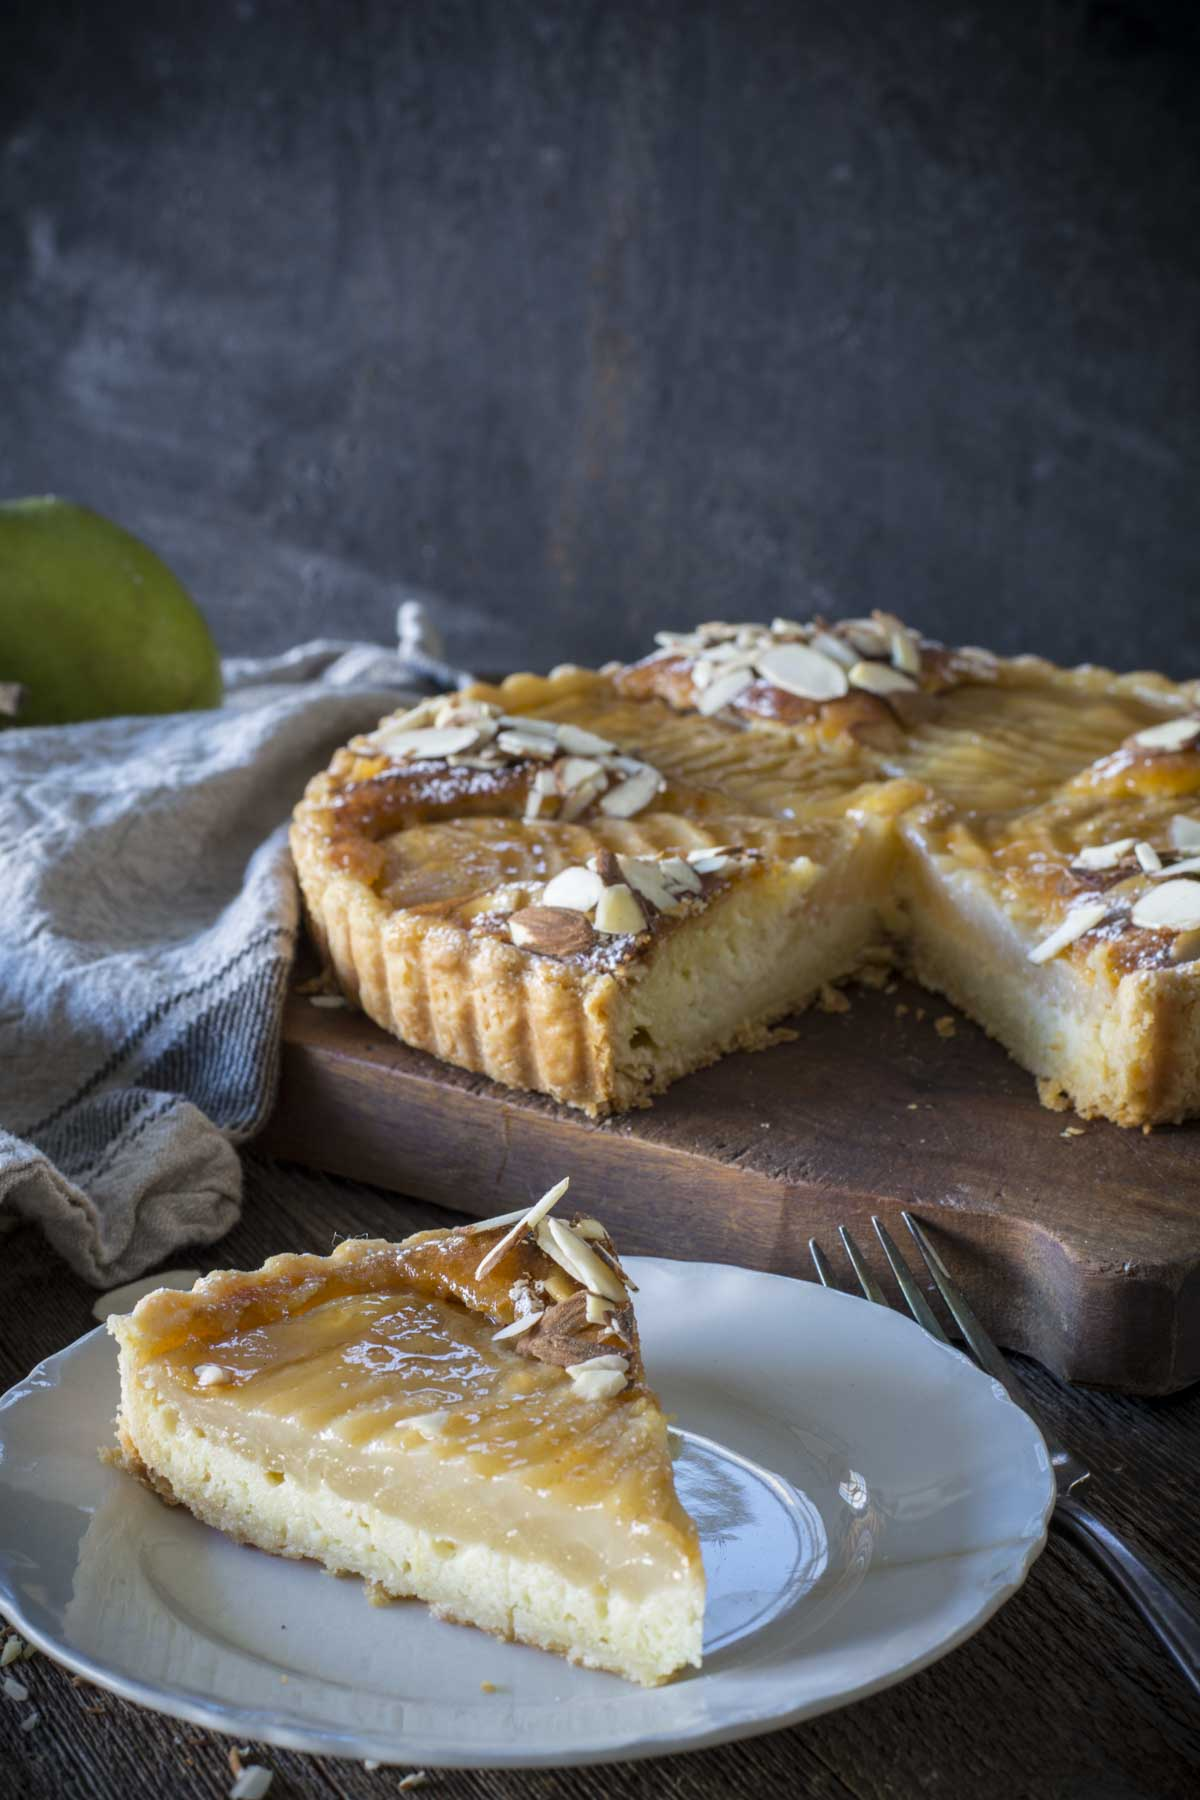 Slice of Pear Almond Tart on a white plate with pie in background